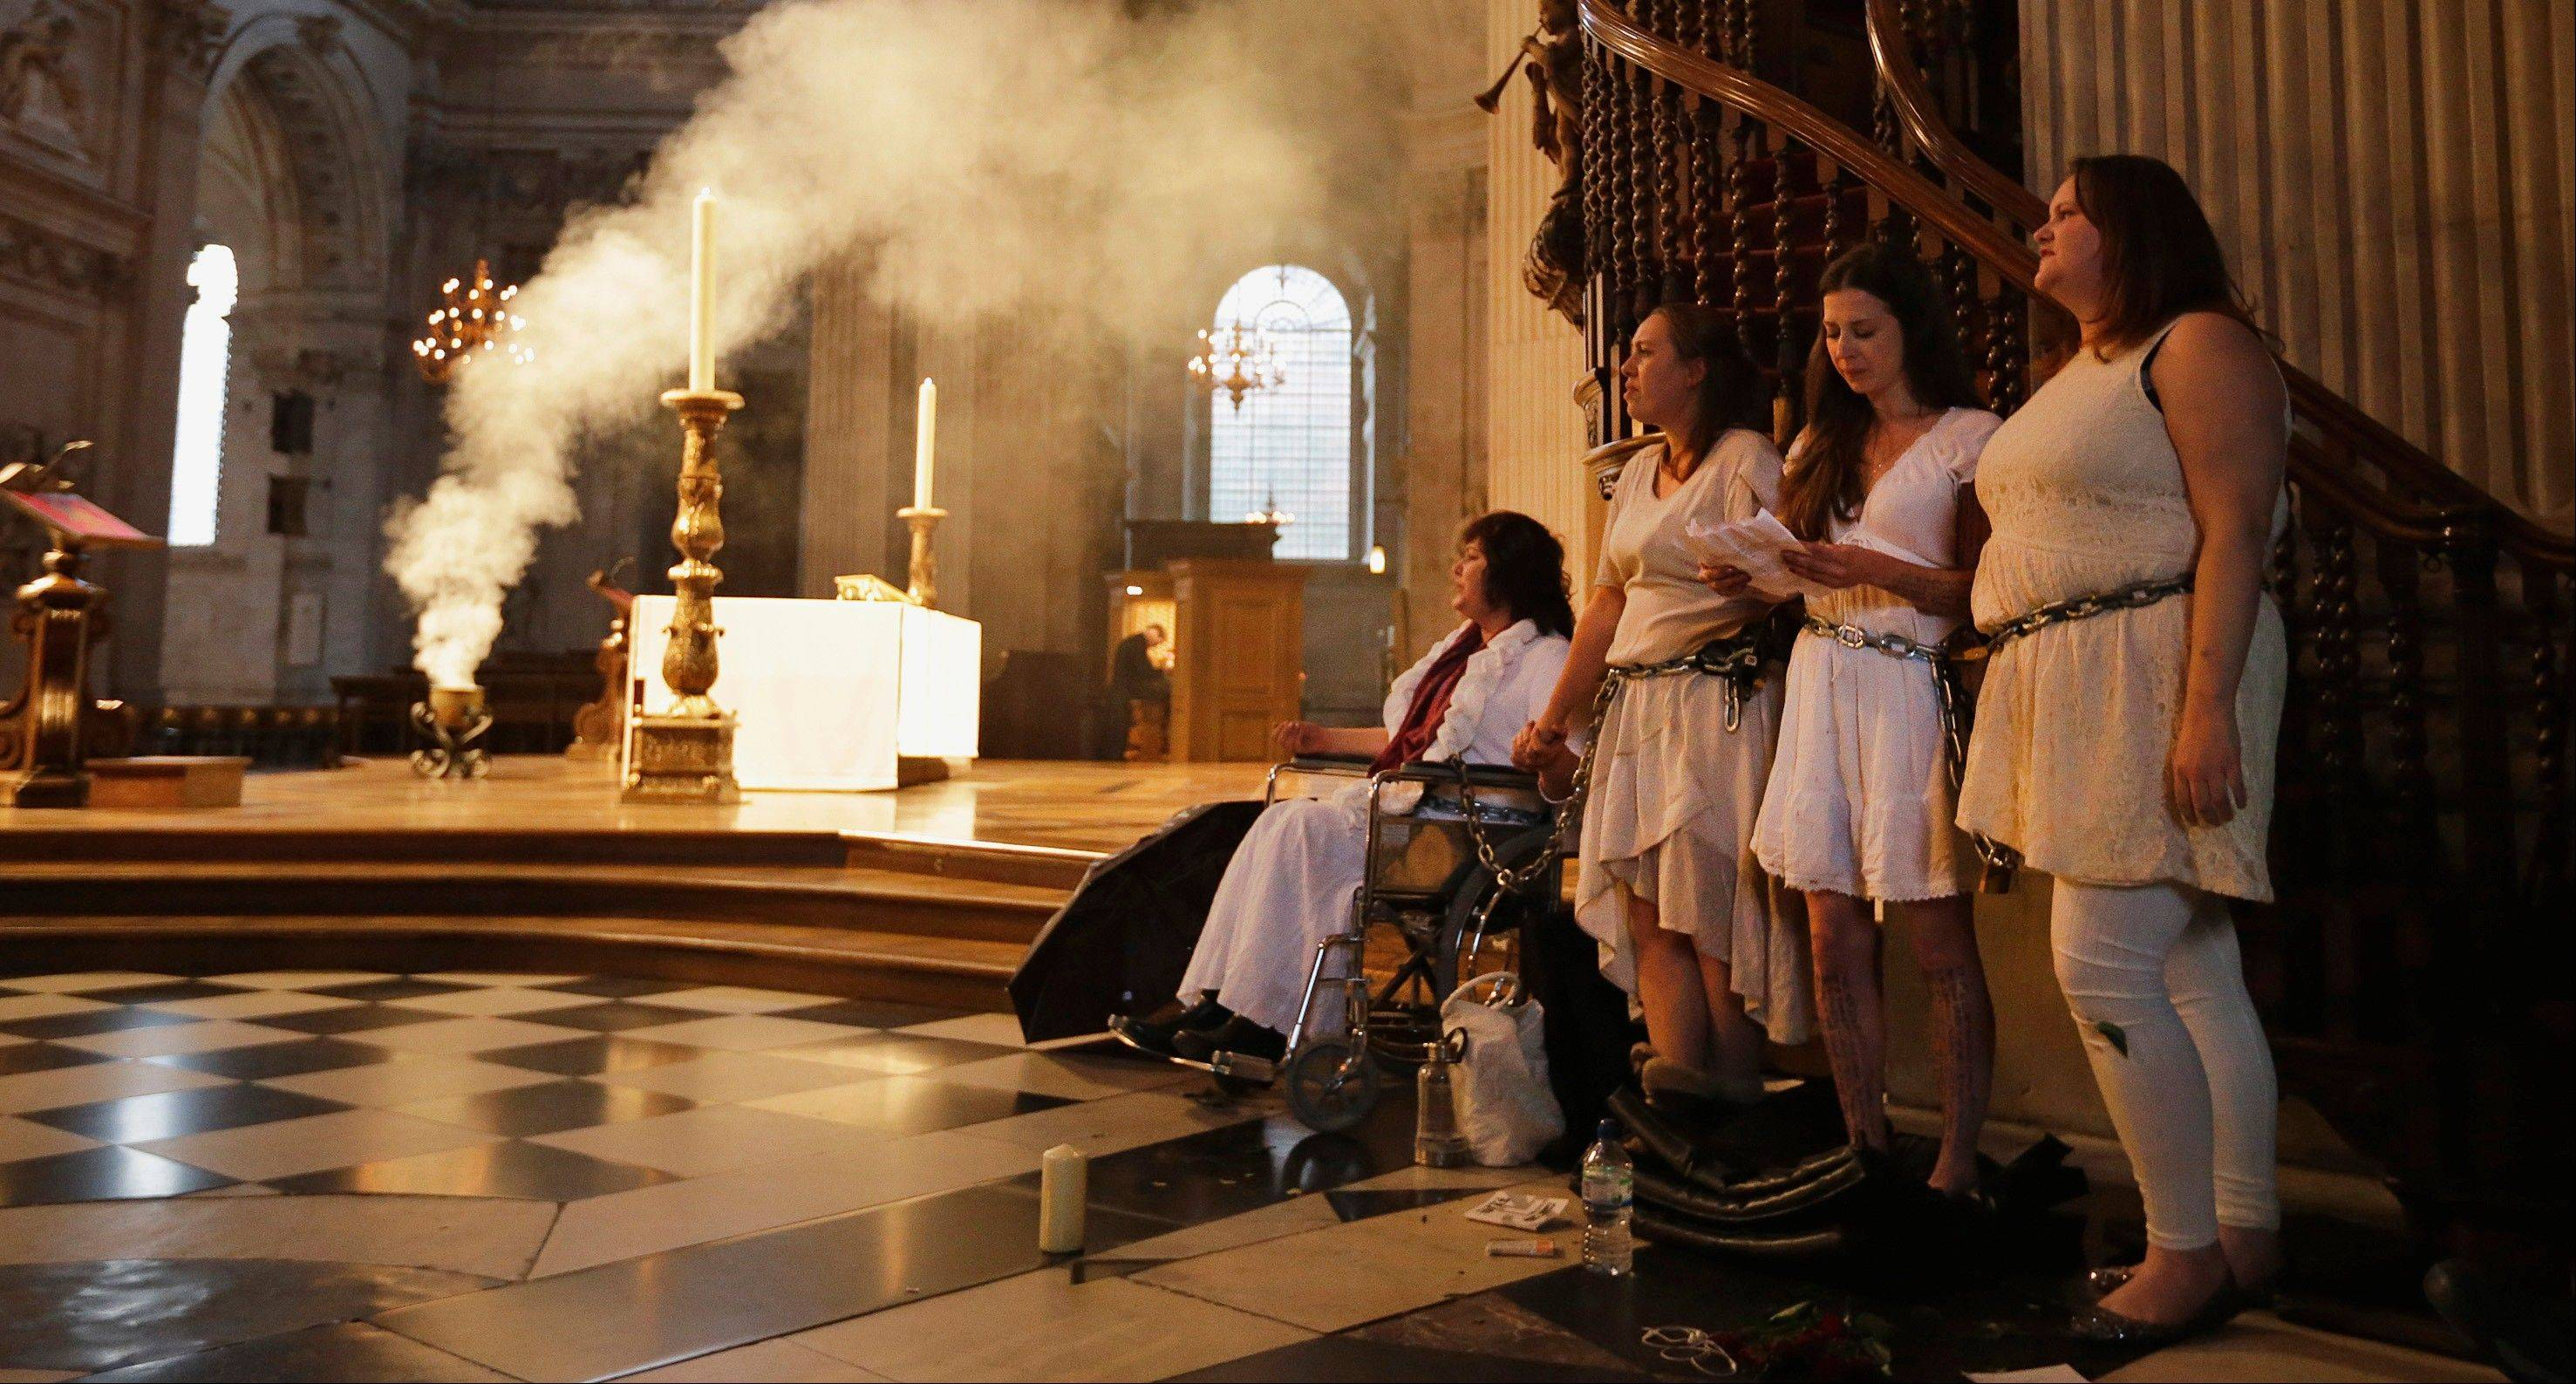 Four women activists of the Occupy movement protest chained to the pulpit inside St Paul's Cathedral as preparations for evensong take place in London, Sunday.